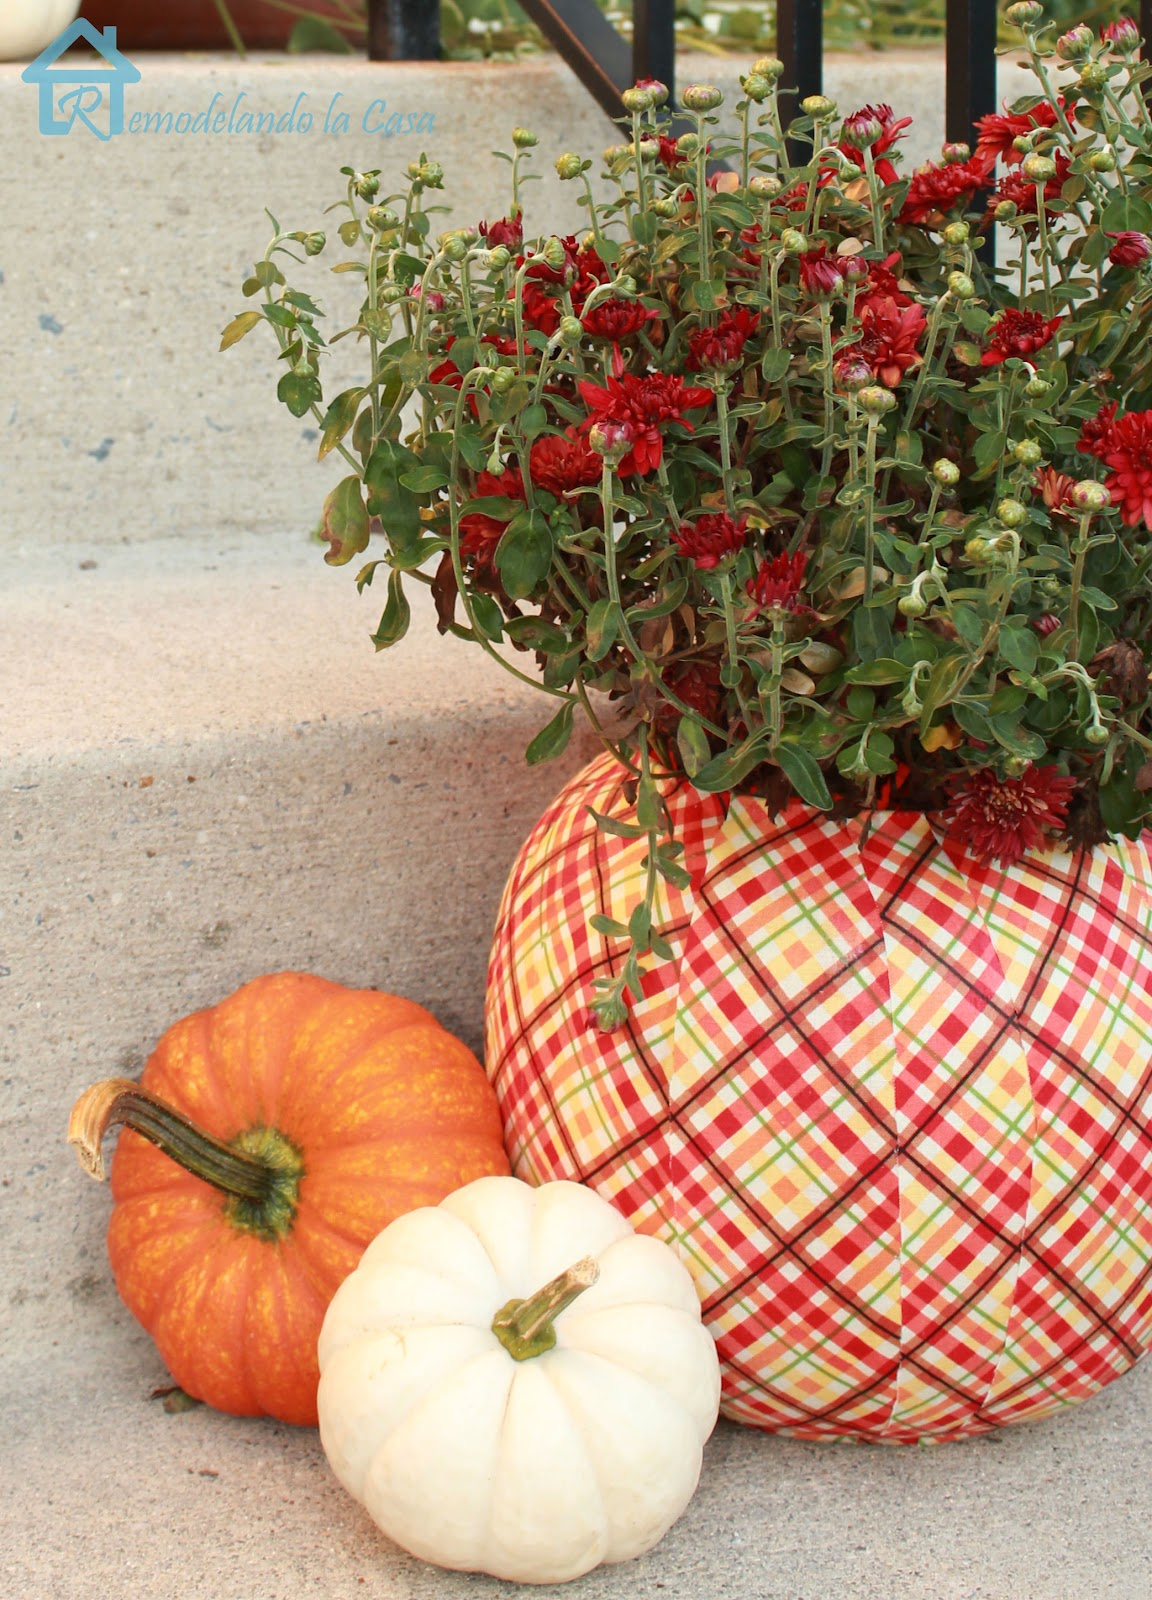 orange and white little pumpkins with plastic decoupage fabric pumpkin - red mum plant